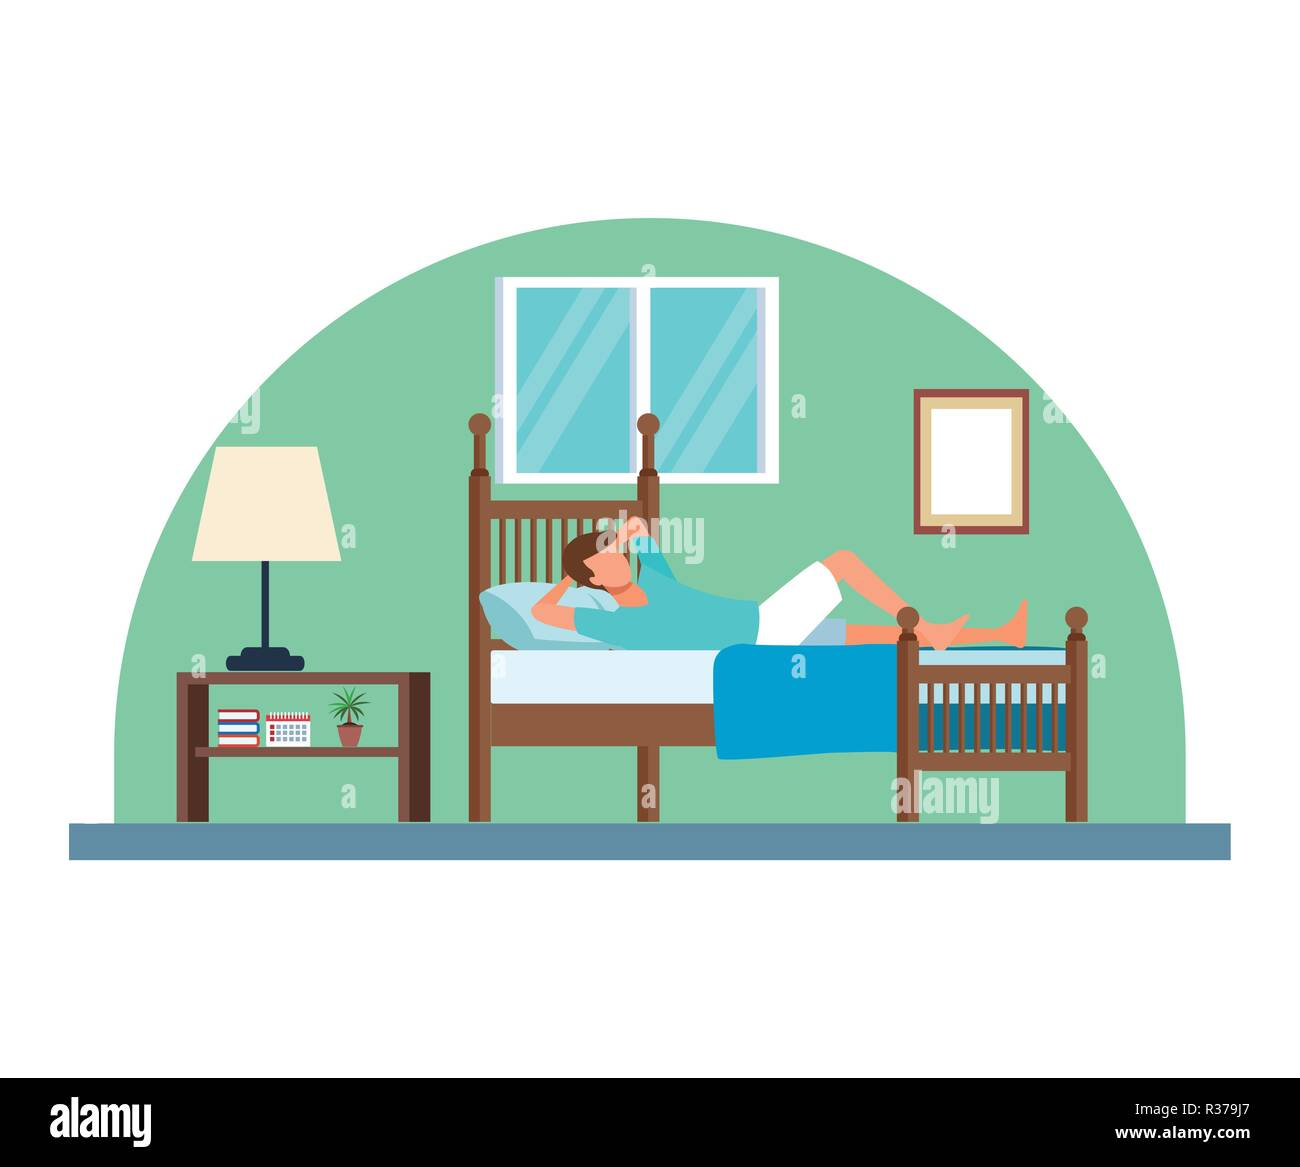 routines at home - Stock Image